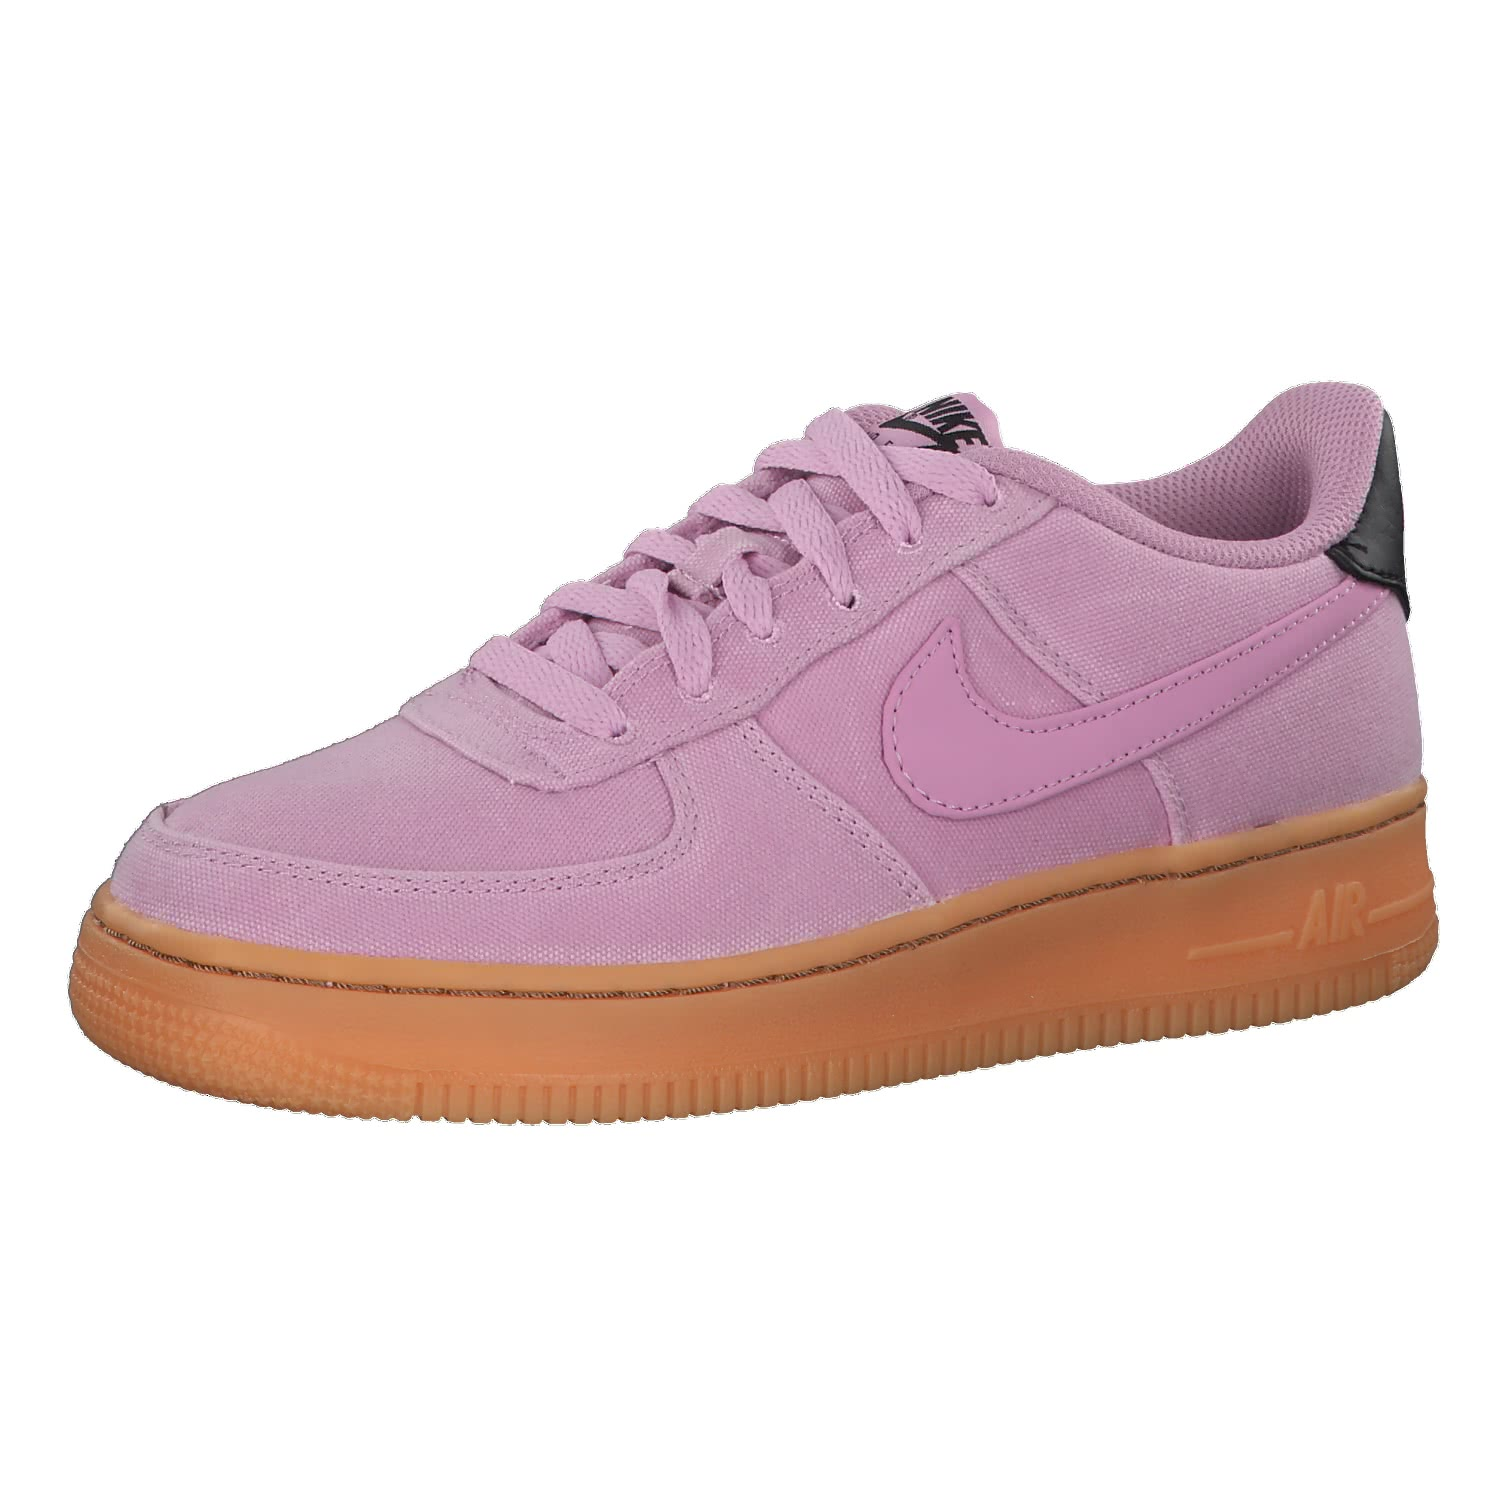 Patatas convergencia encerrar  nike air force 1 arctic rosa coupon code for f75d7 0d9d0